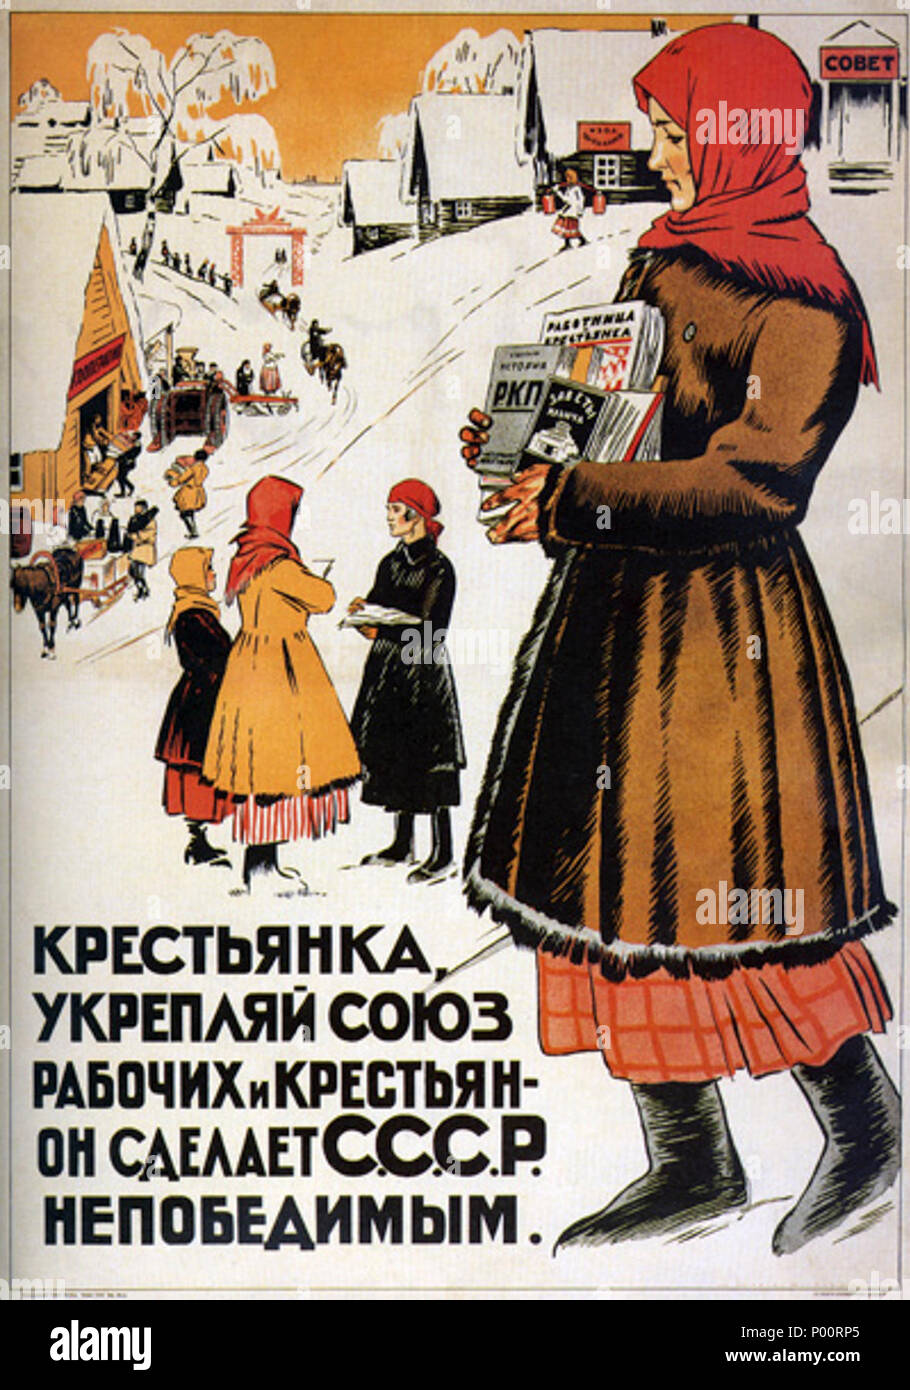 Peasant woman2C consolidate the unity of workers and peasants. - Stock Image